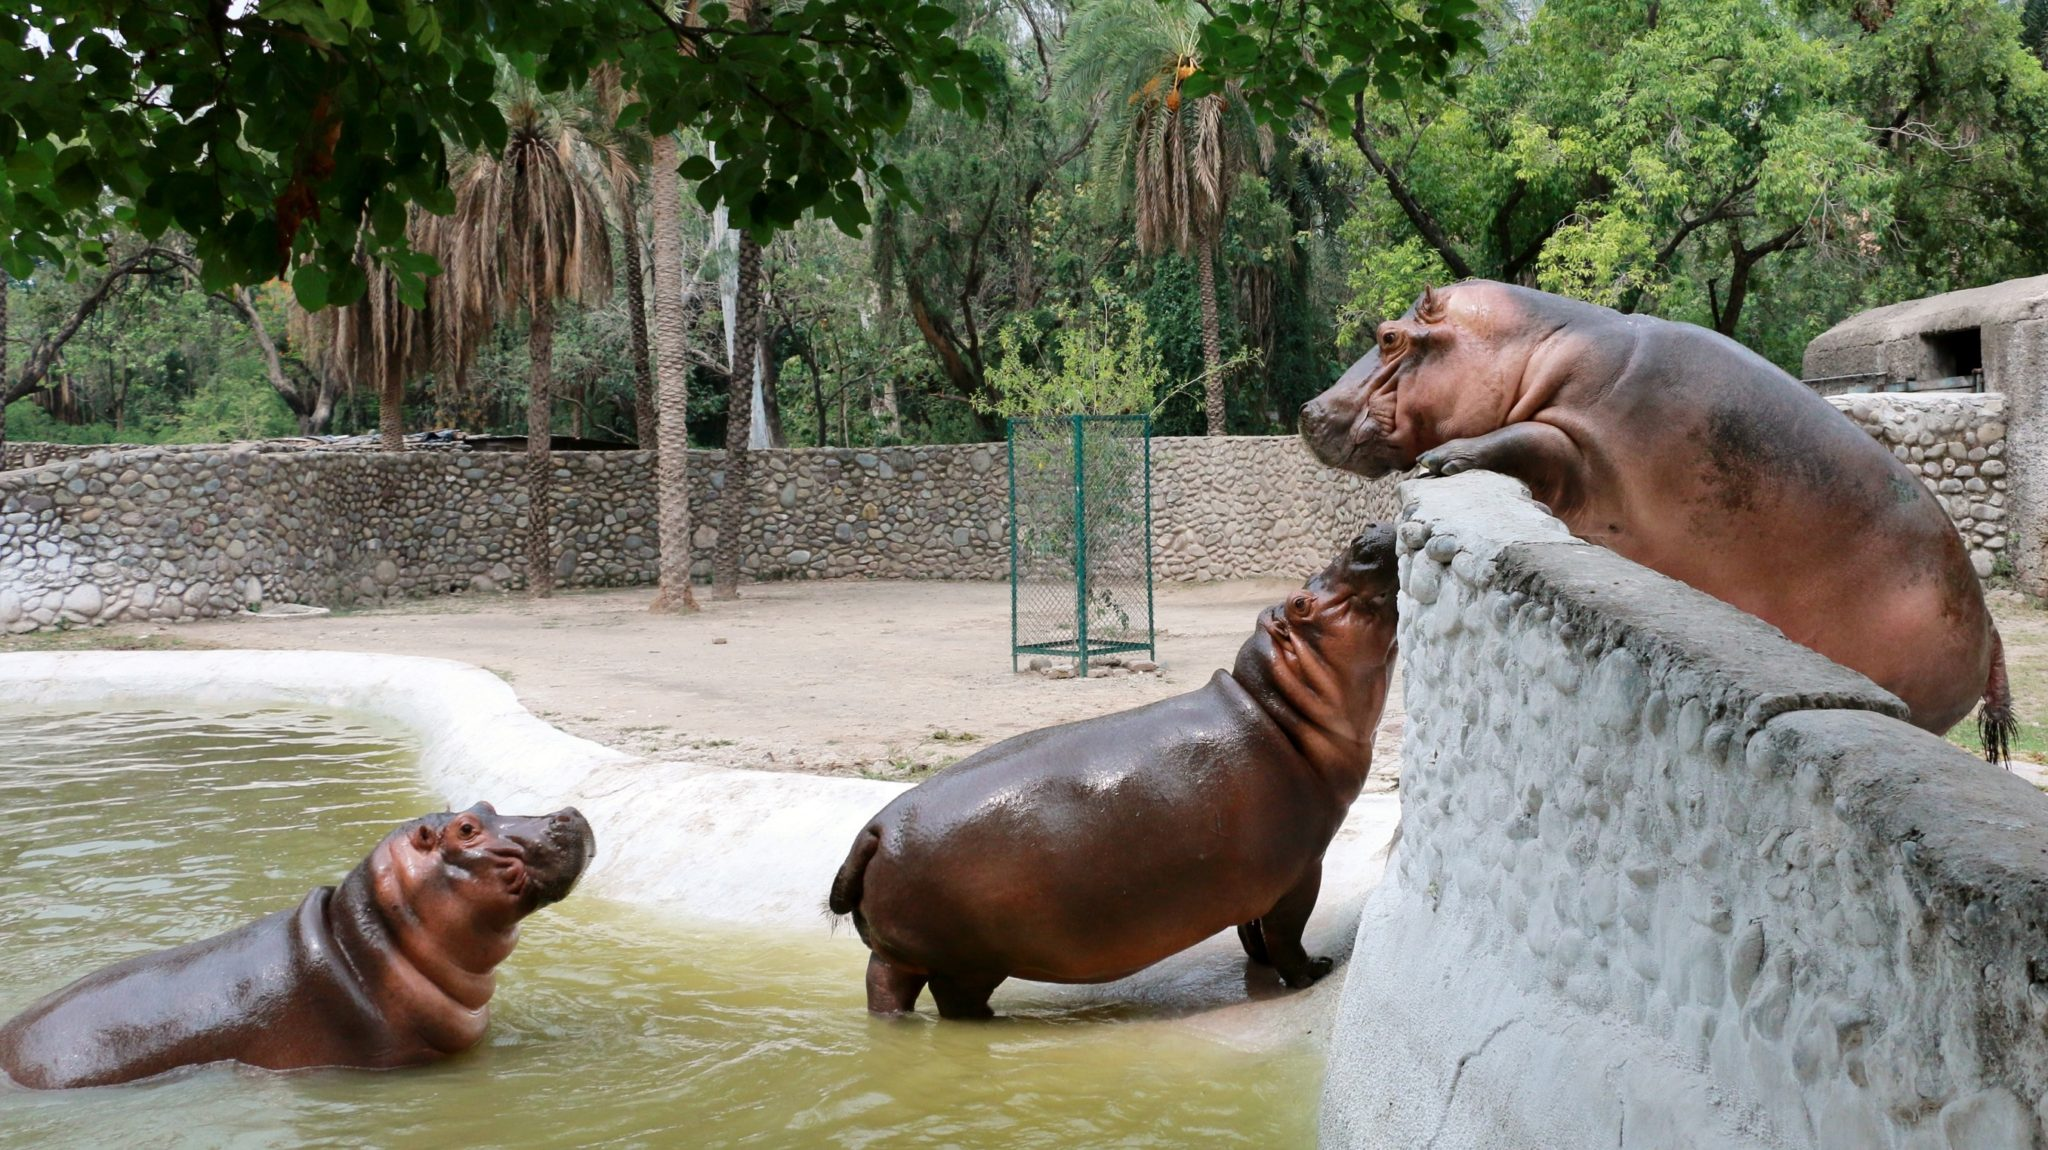 10 Best Places To Visit In Chandigarh, India / Chhatbir Zoo